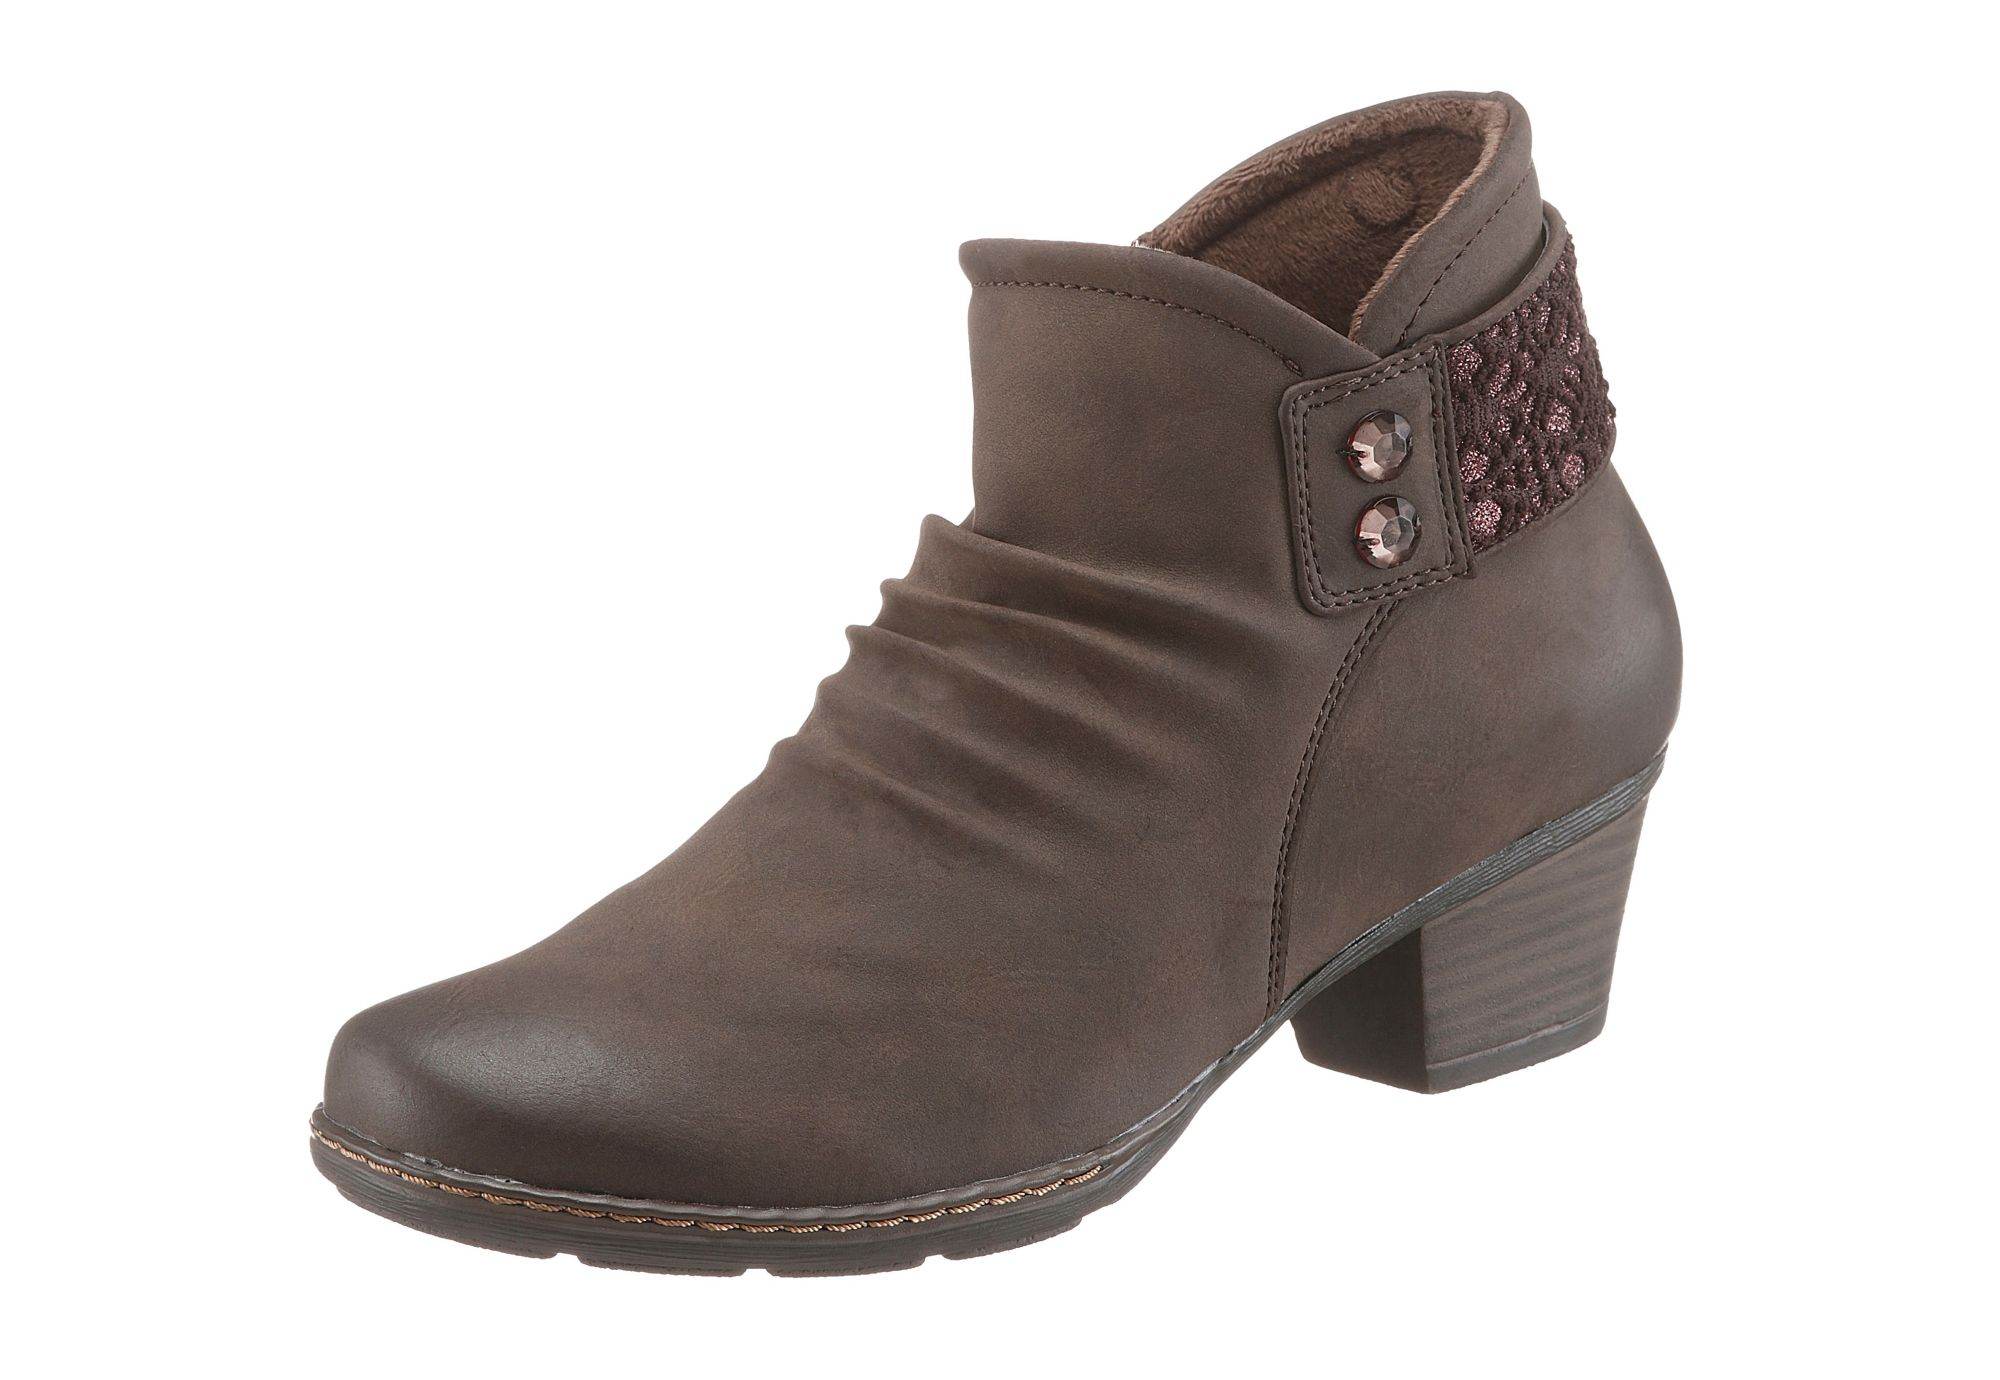 HUSH PUPPIES Hush Puppies Ankleboots